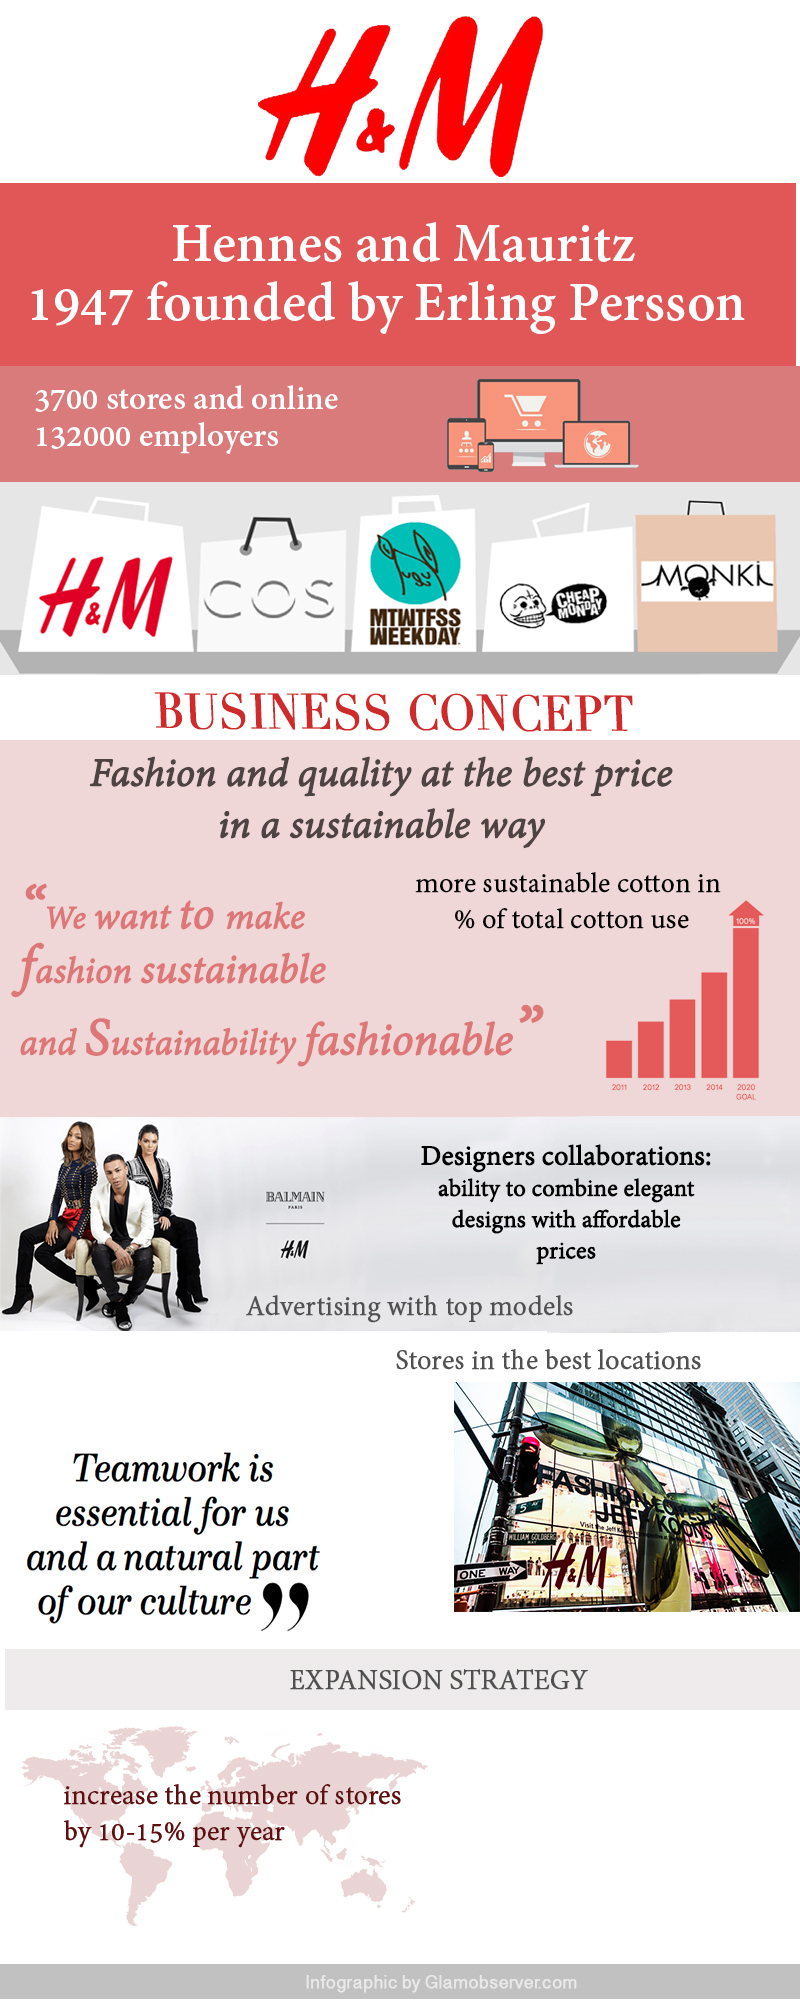 H&M-infographic